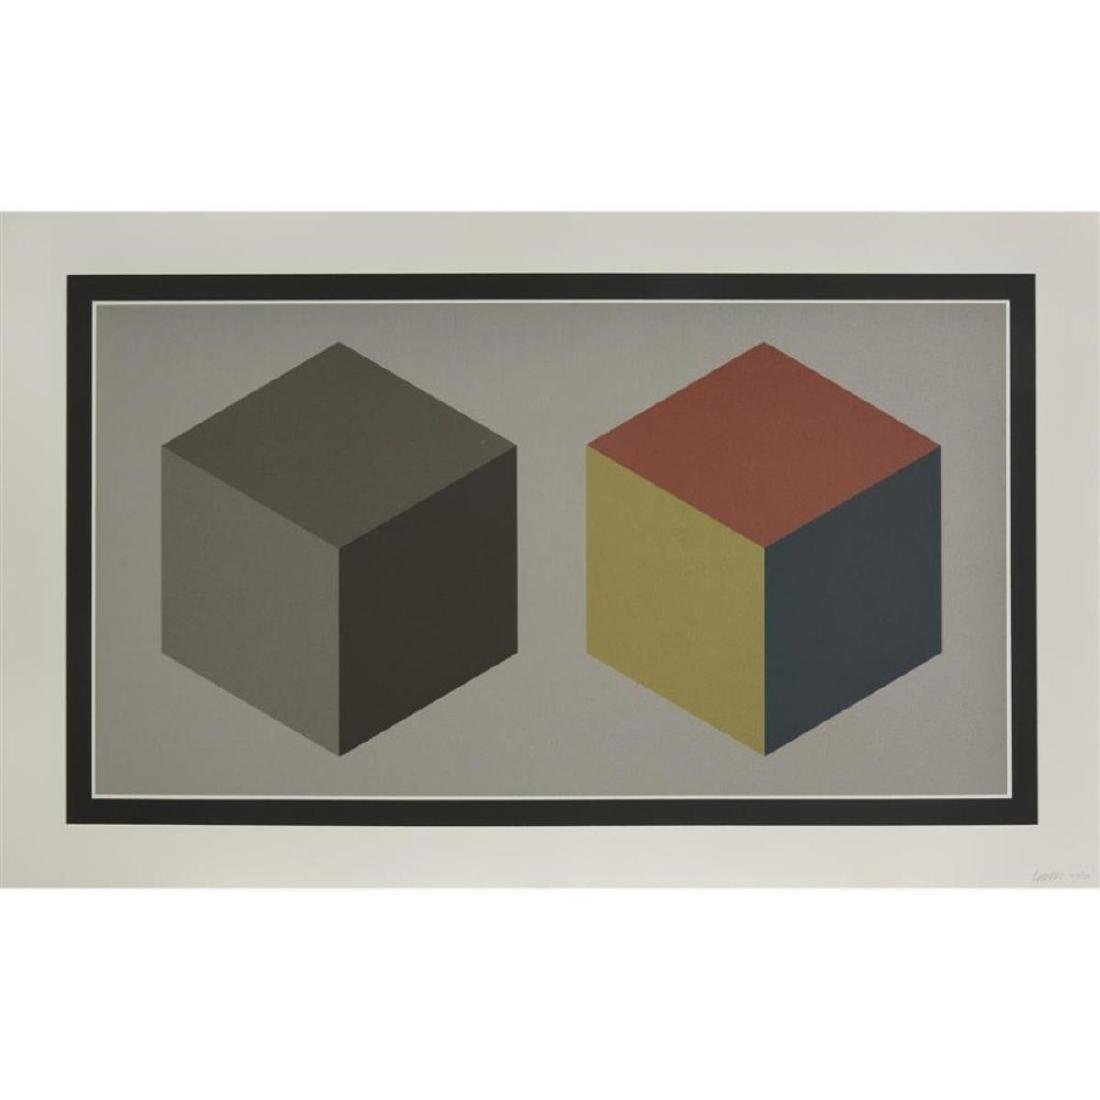 Sol Lewitt - Double Cubes in Gray and Colors